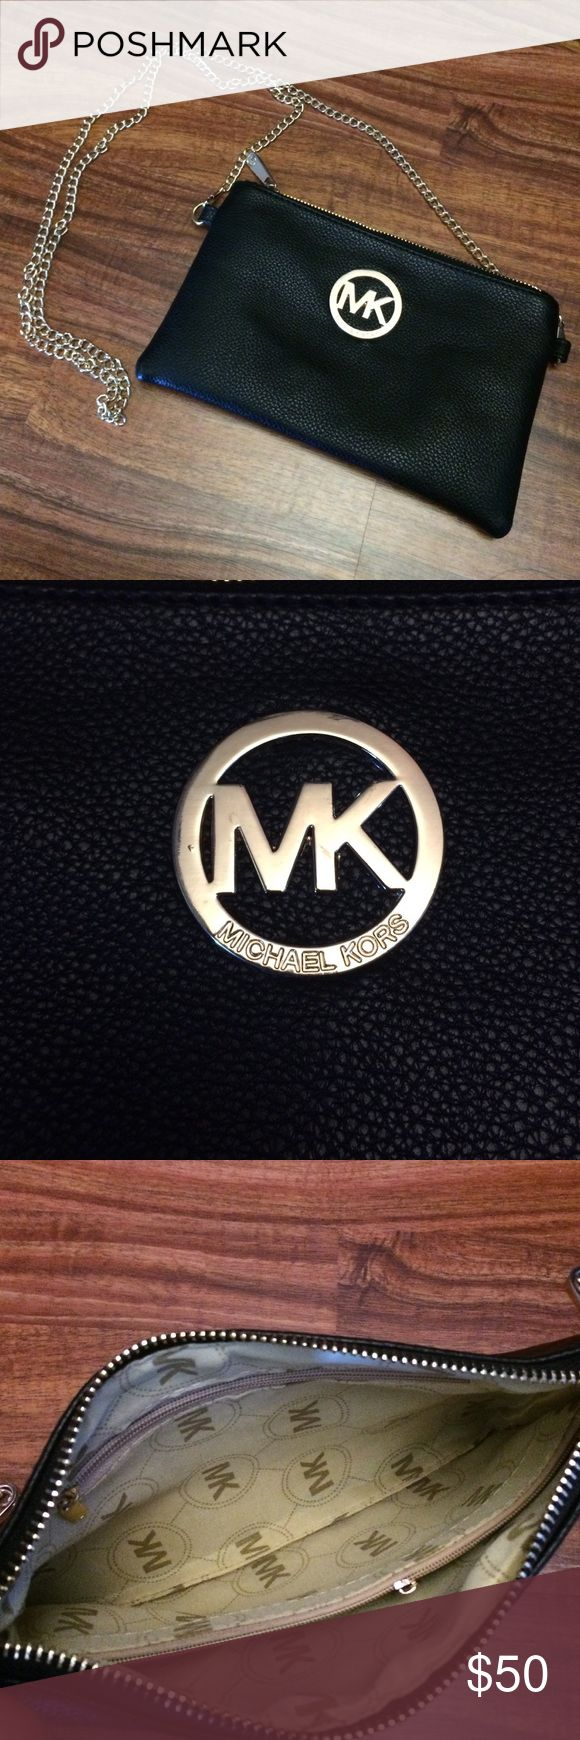 Michael Kors Clutch Michael Kors Clutch. Rarely used. Comes with removable chain strap and wristlet strap. Clean and in excellent condition. Some light scratches on MK emblem. Bags Clutches & Wristlets